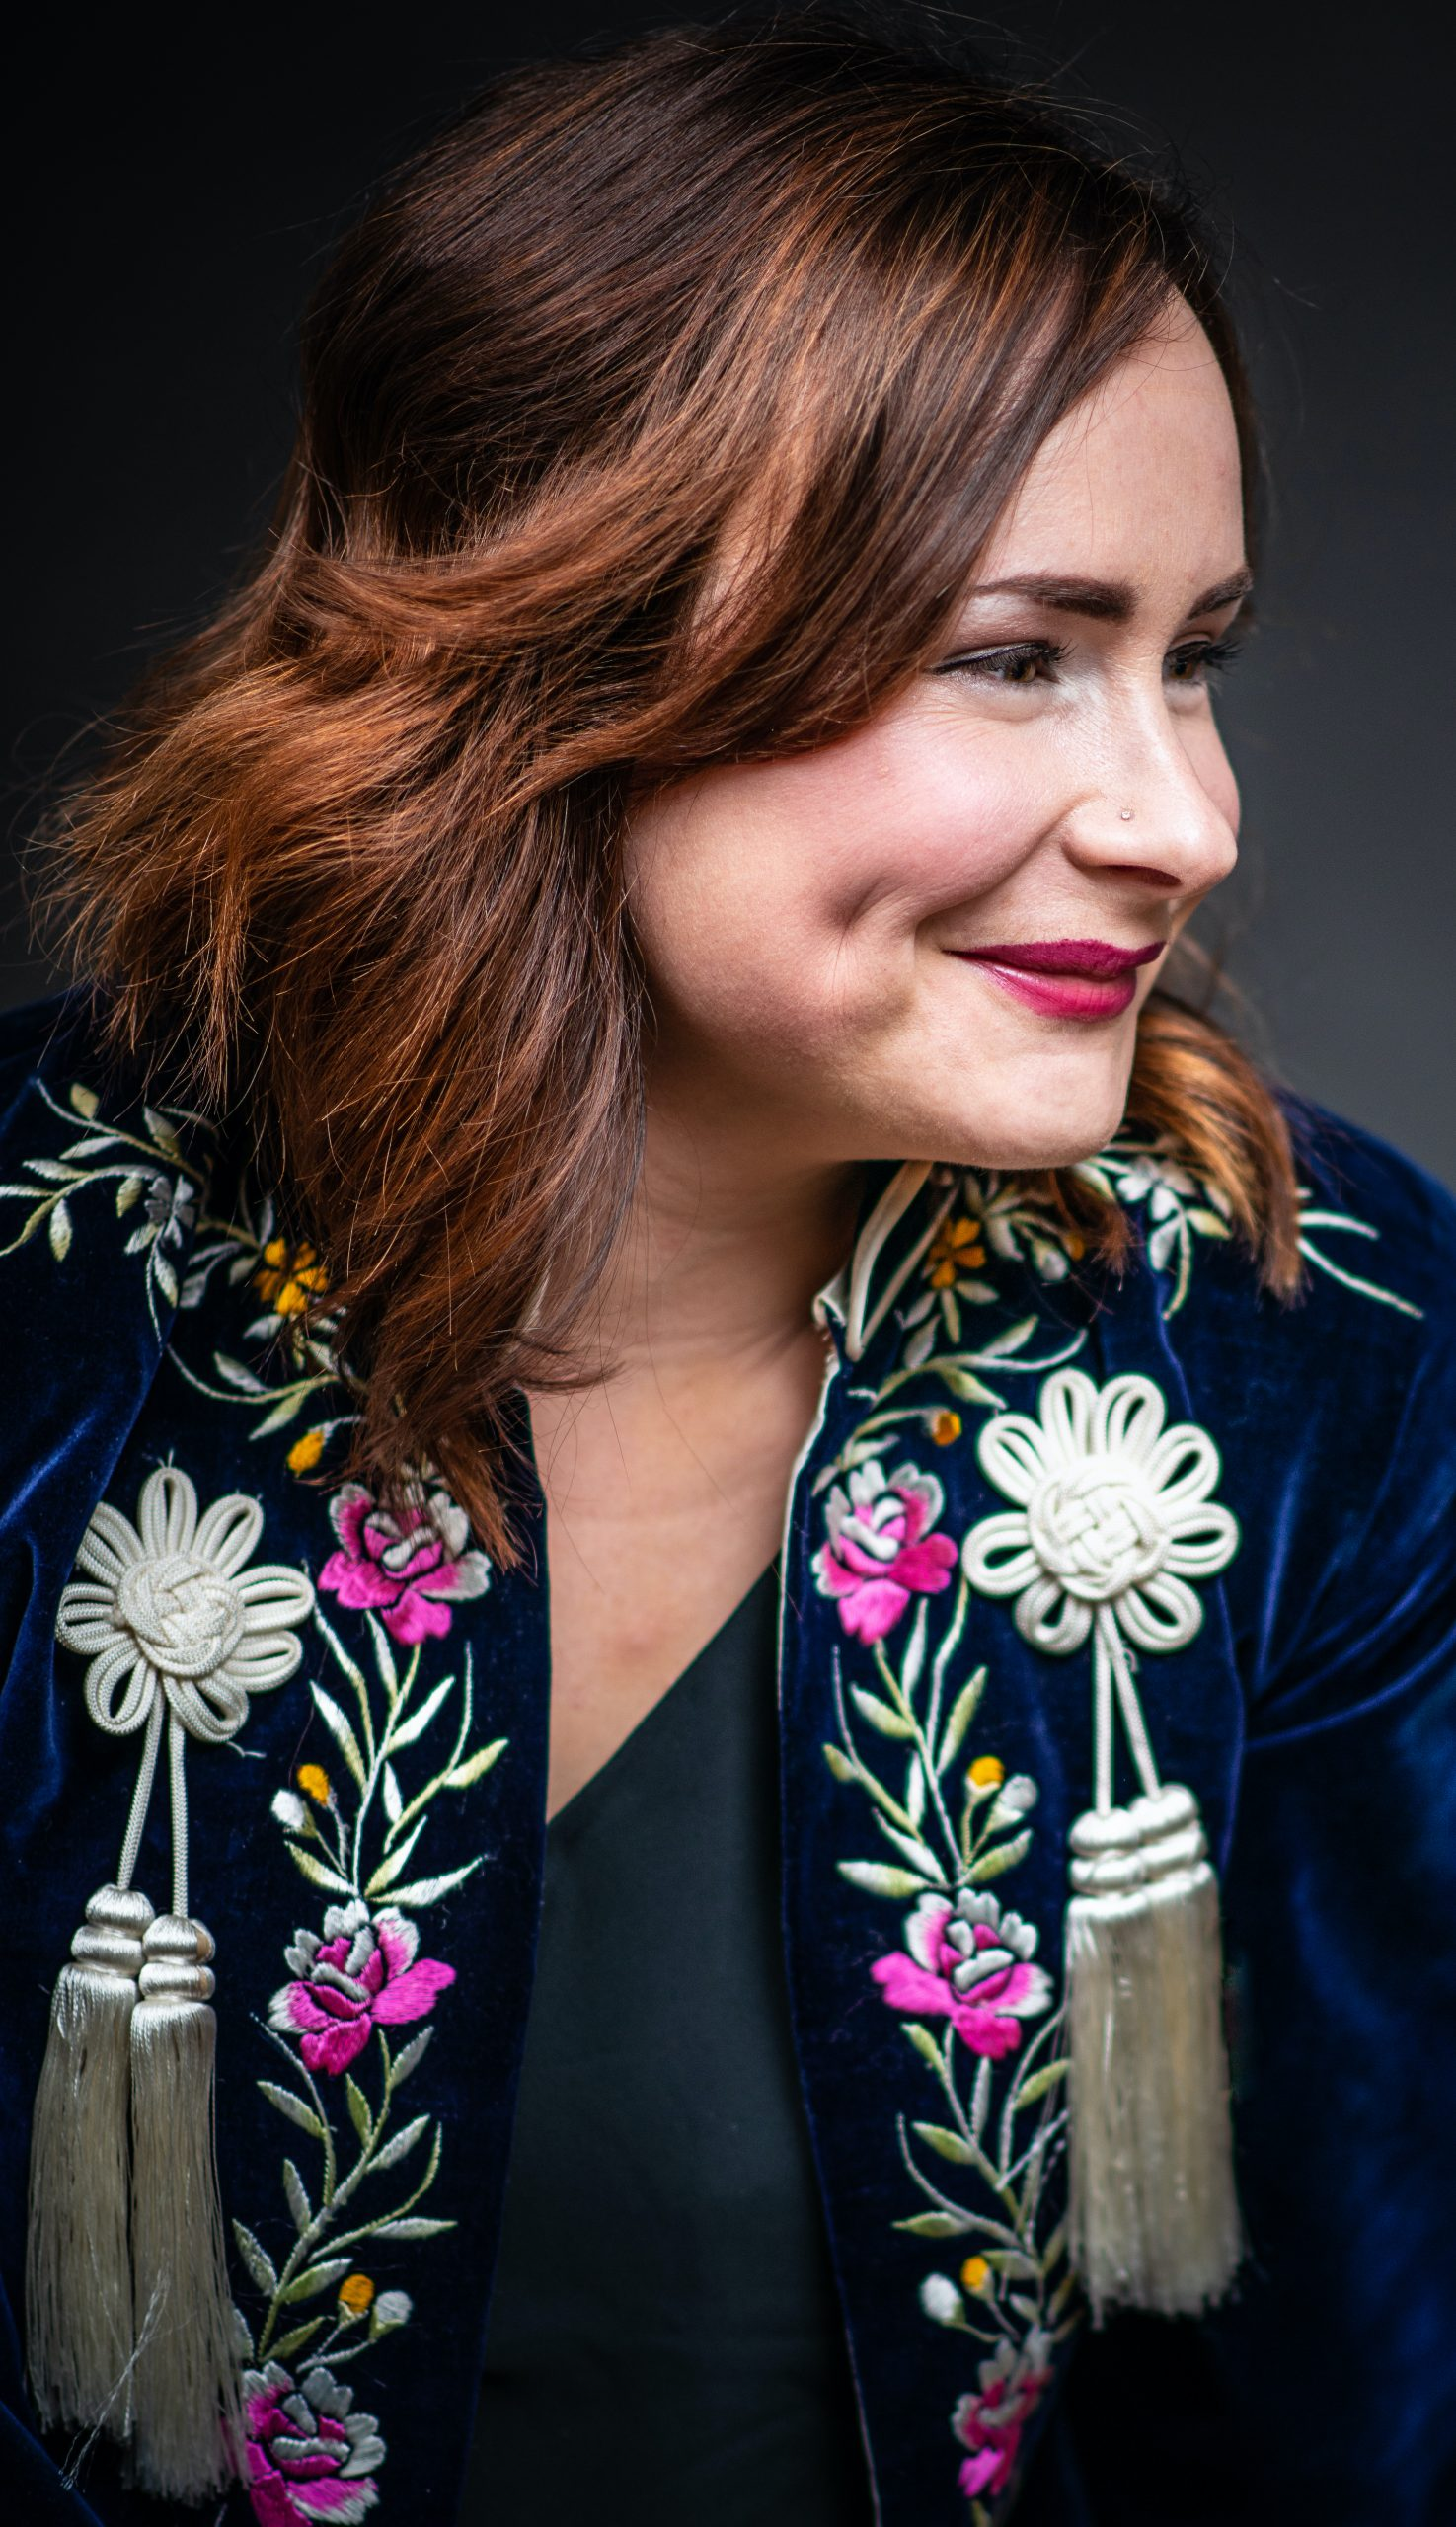 image of writer in residence kayla geitzler. she has reddish hair with her face angled to the right. she wears red lipstick and a black jacket with pink, green, and white floral embroidery on it.